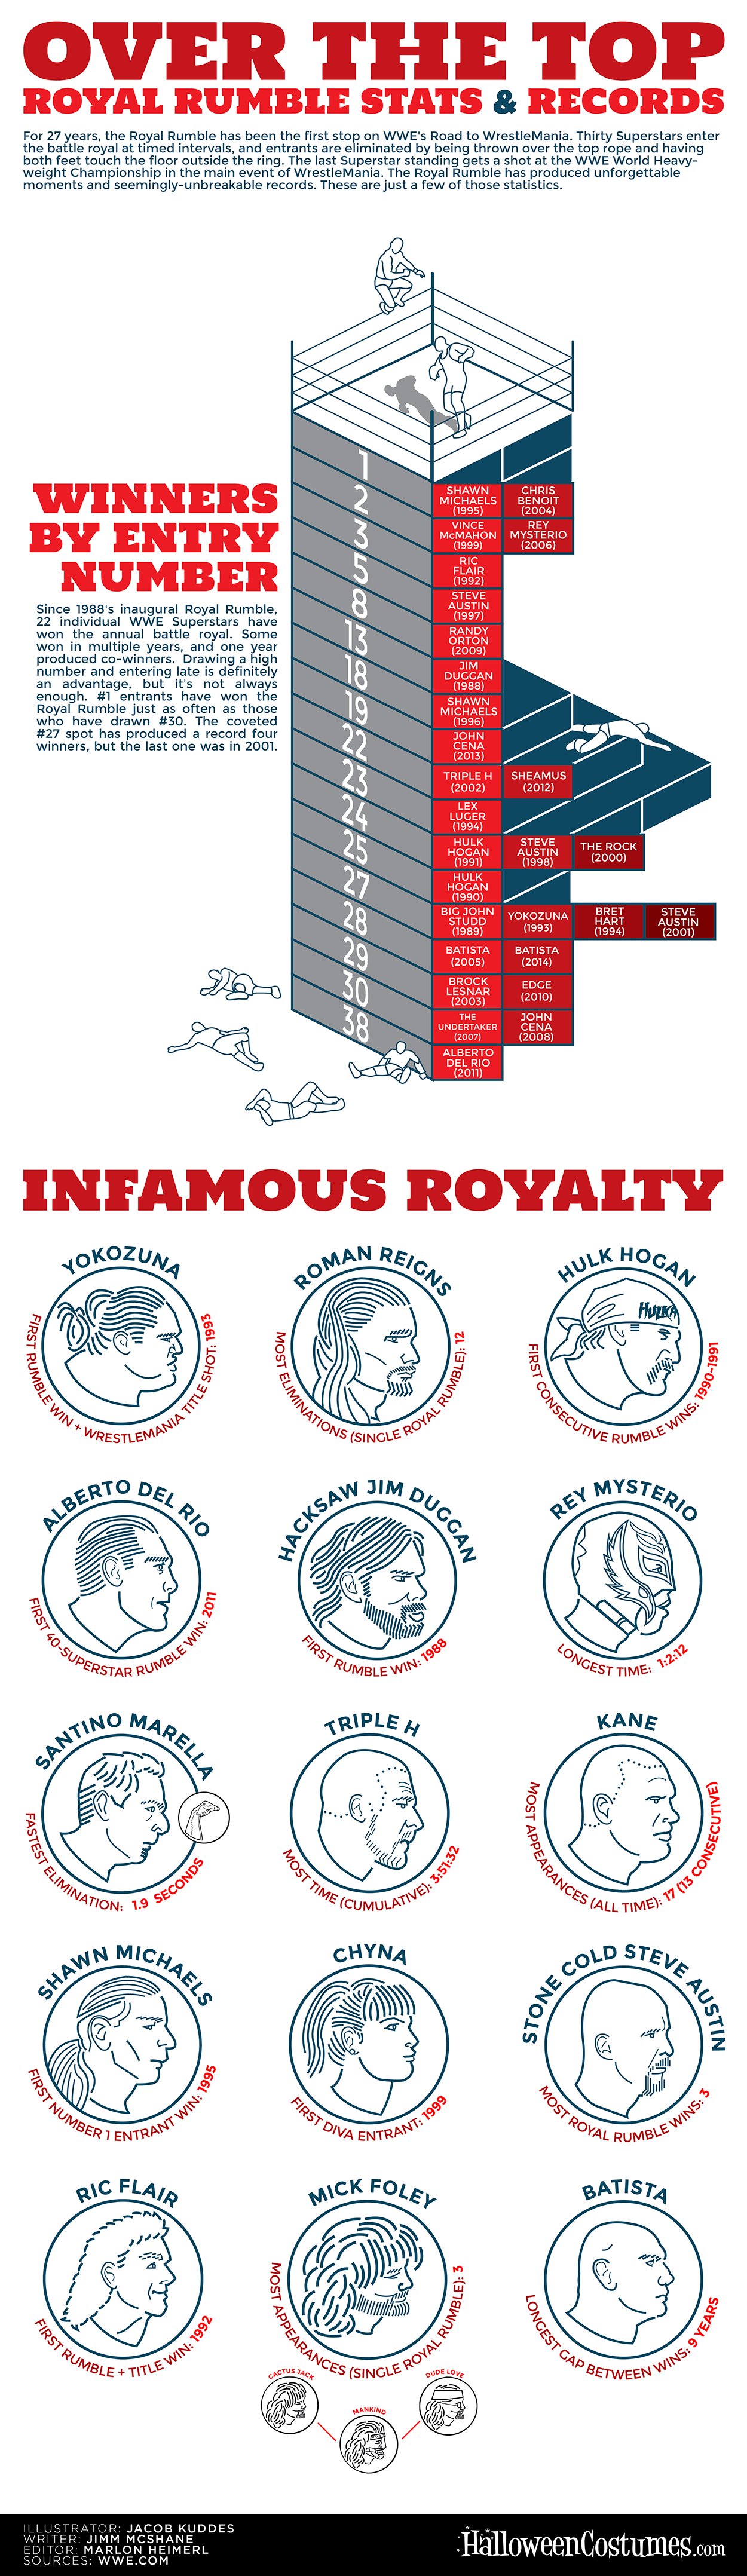 Over the Top: Royal Rumble Stats & Records [Infographic]